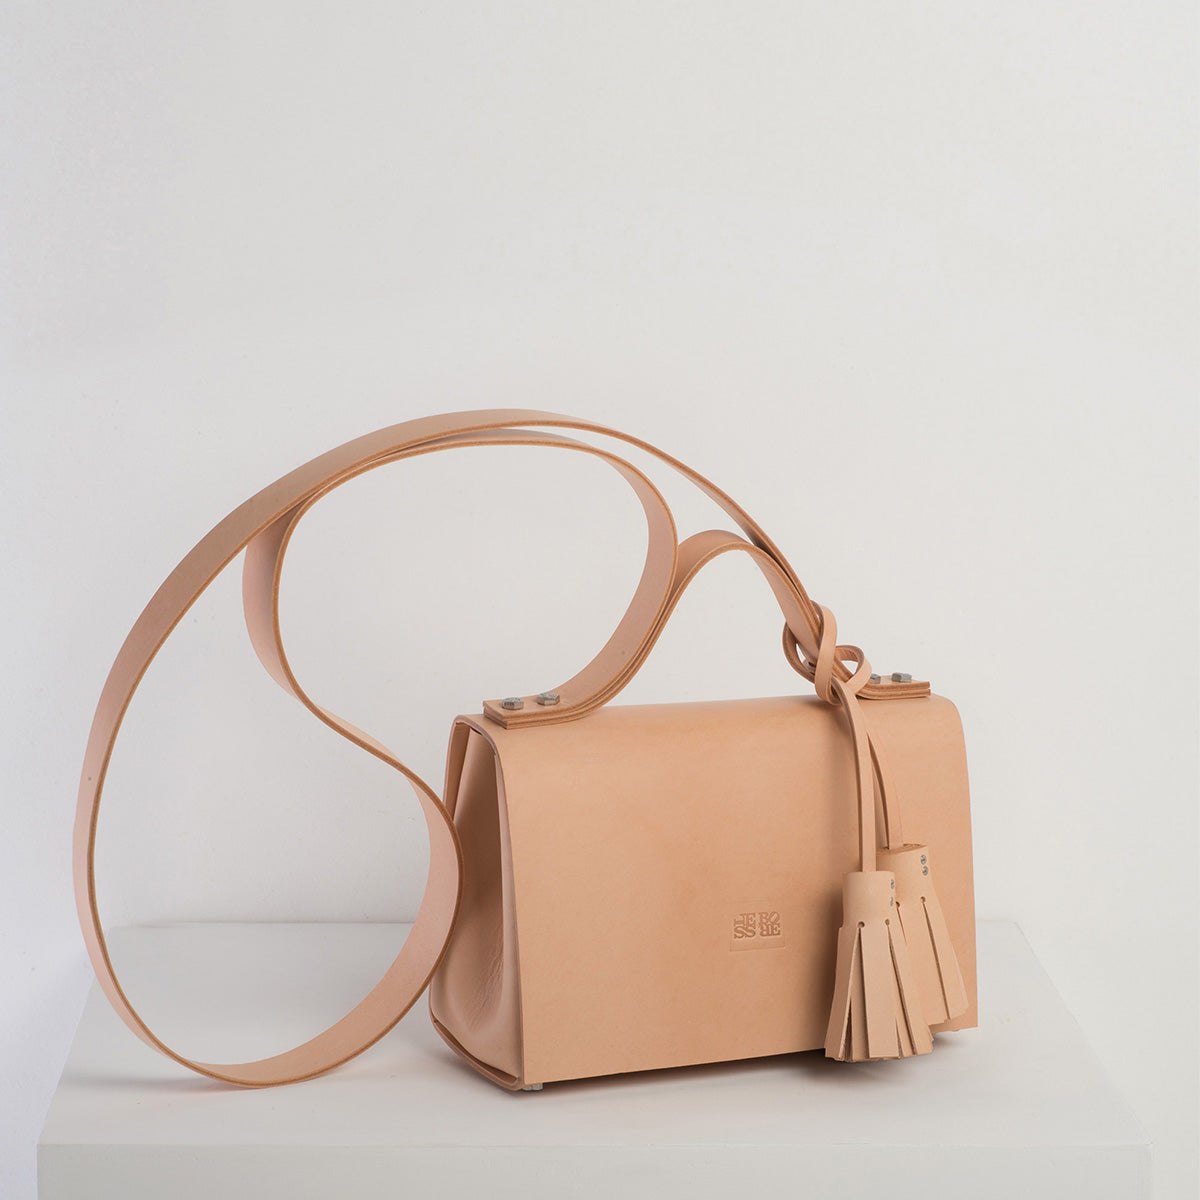 Mecano No1 - Less Bore - Luxury Handbags - Spanish Brand - Luxury Handbag Brand - Less Bore - Spanish Handbag - Hand Stitched - Ecological - Handbag Brand - Beautiful Handbag - Less  Bore Mecano No 1 - Spanish Design - Nude